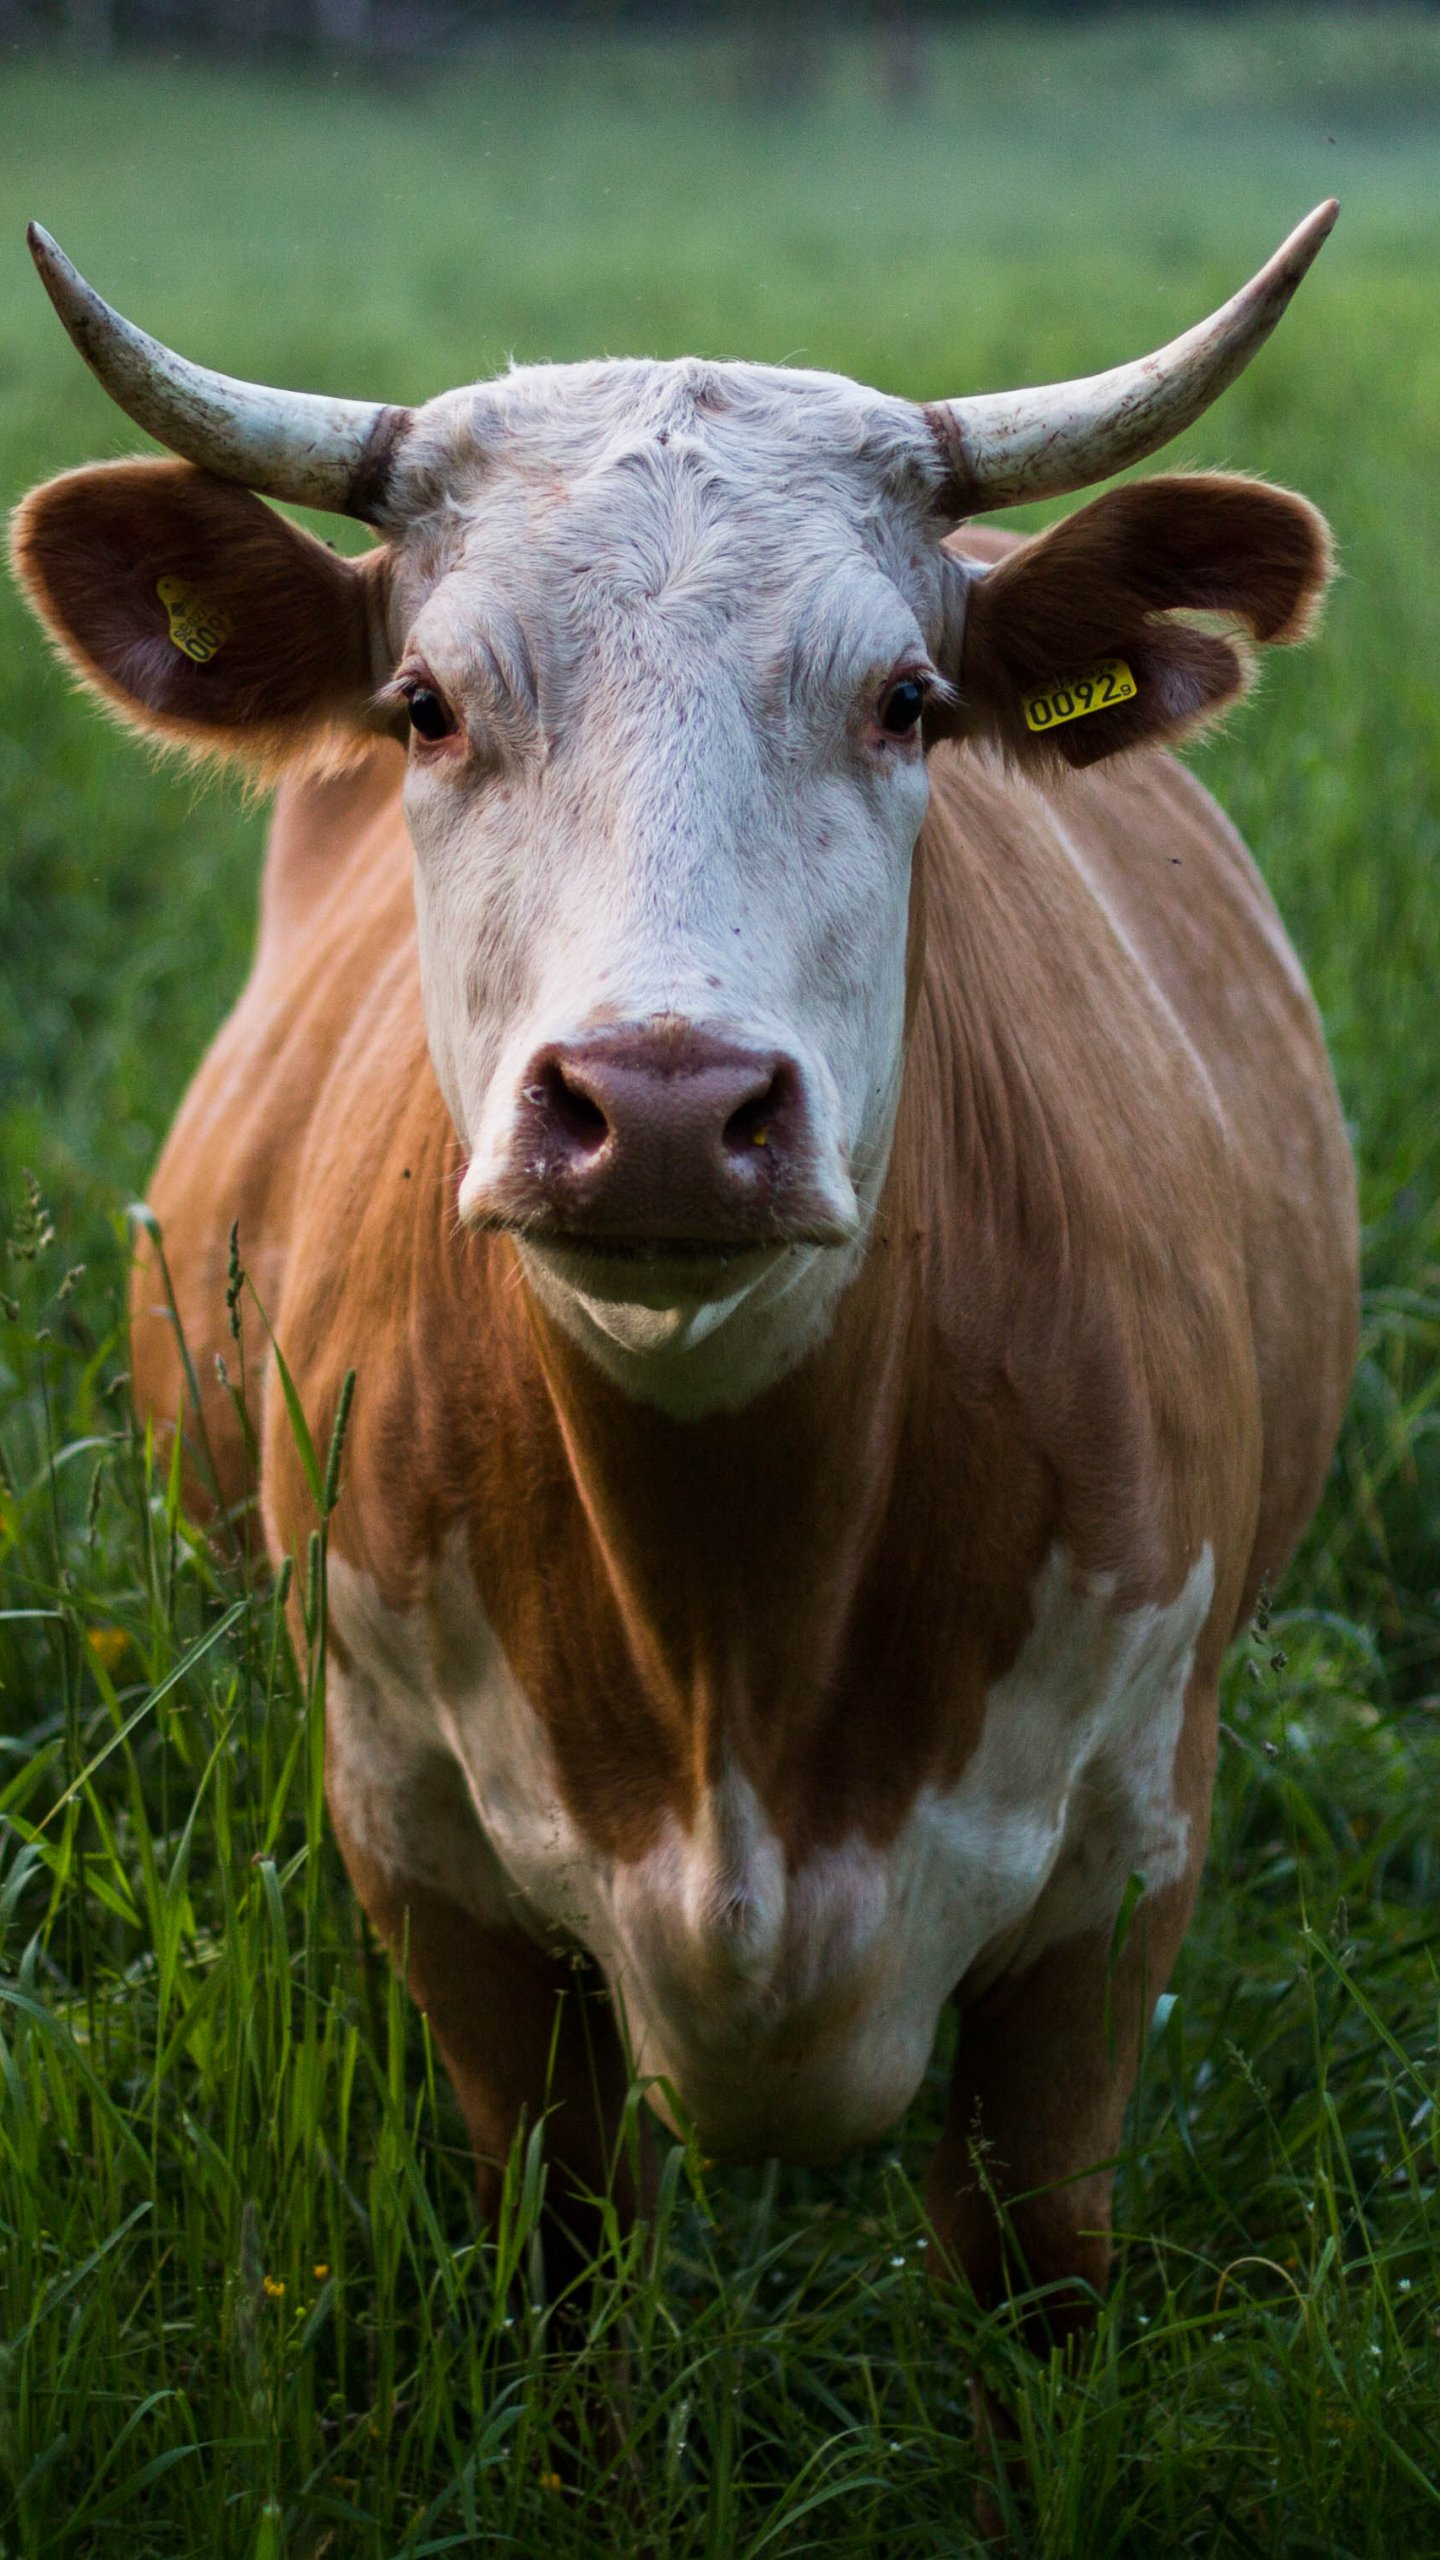 Cow In Grass Wallpaper Iphone Android Desktop Backgrounds